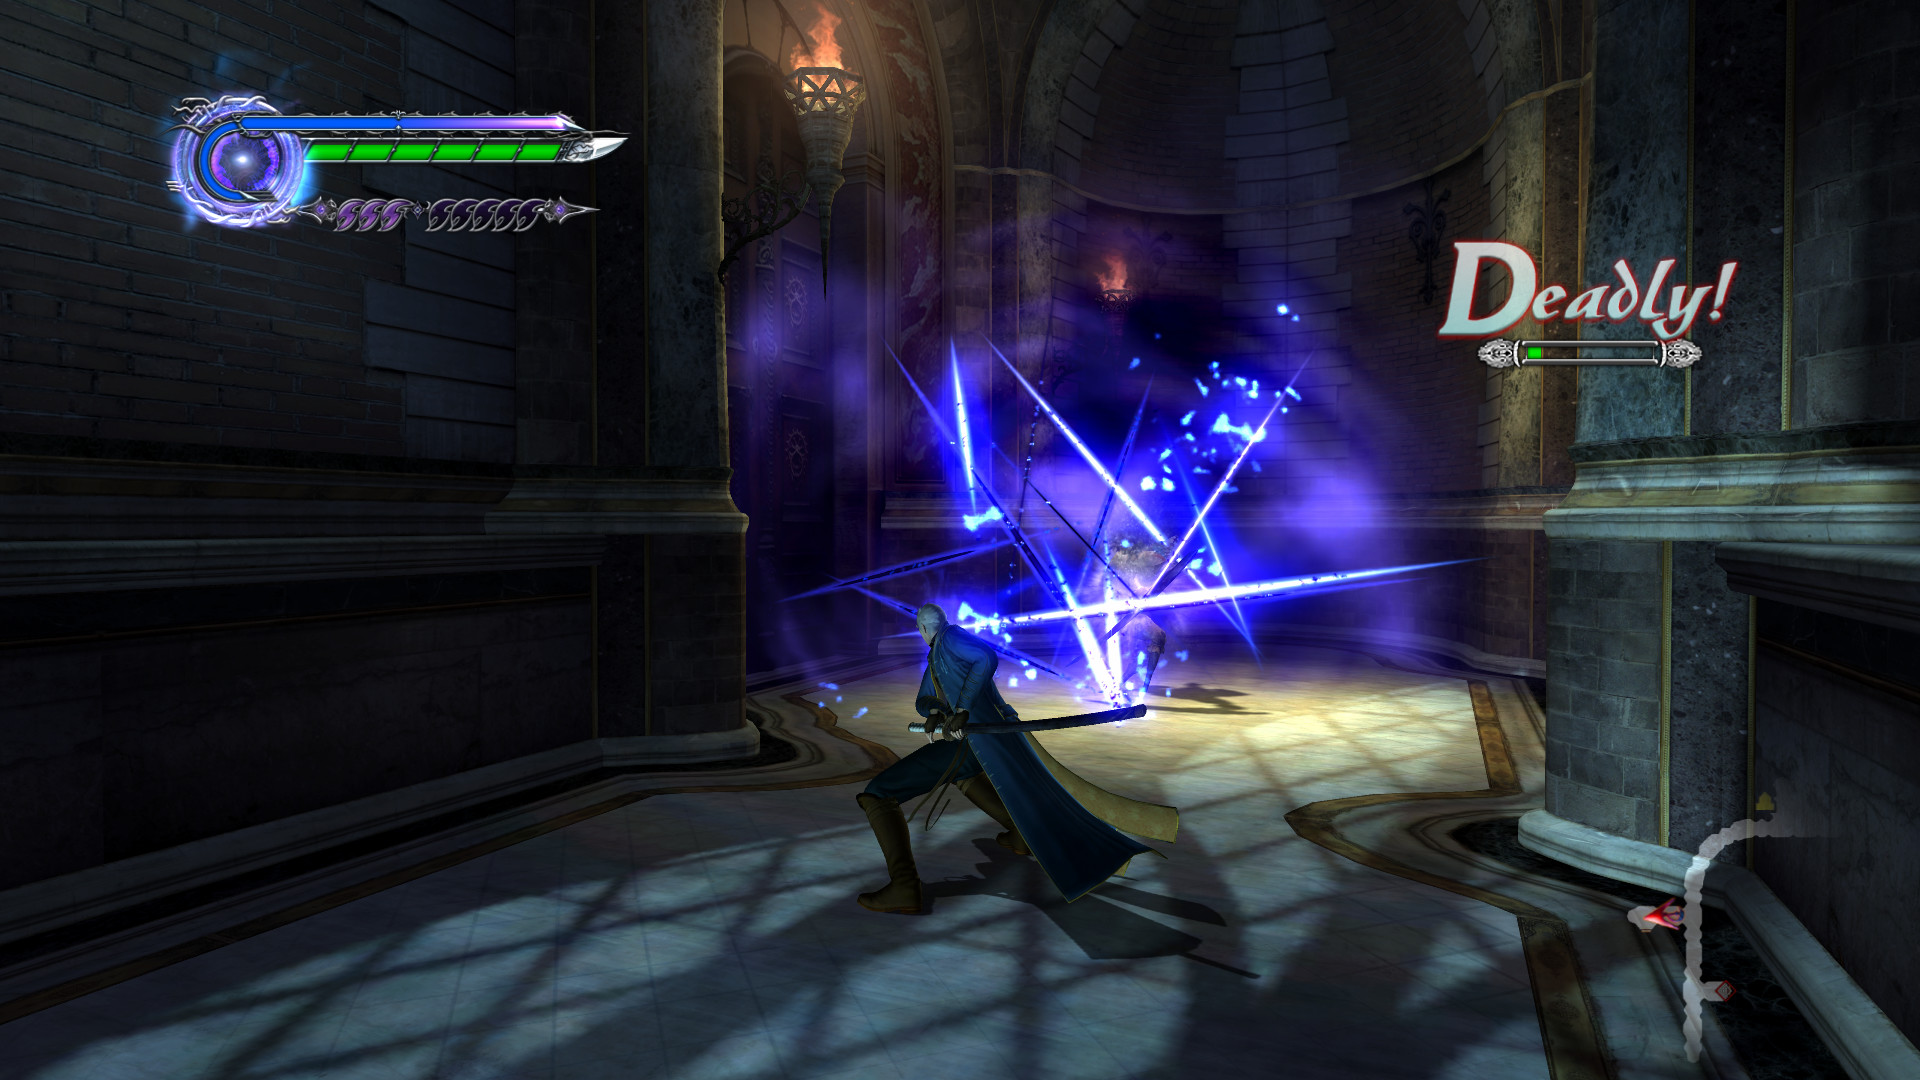 Devil may cry 4: special edition offers 5 playable characters.